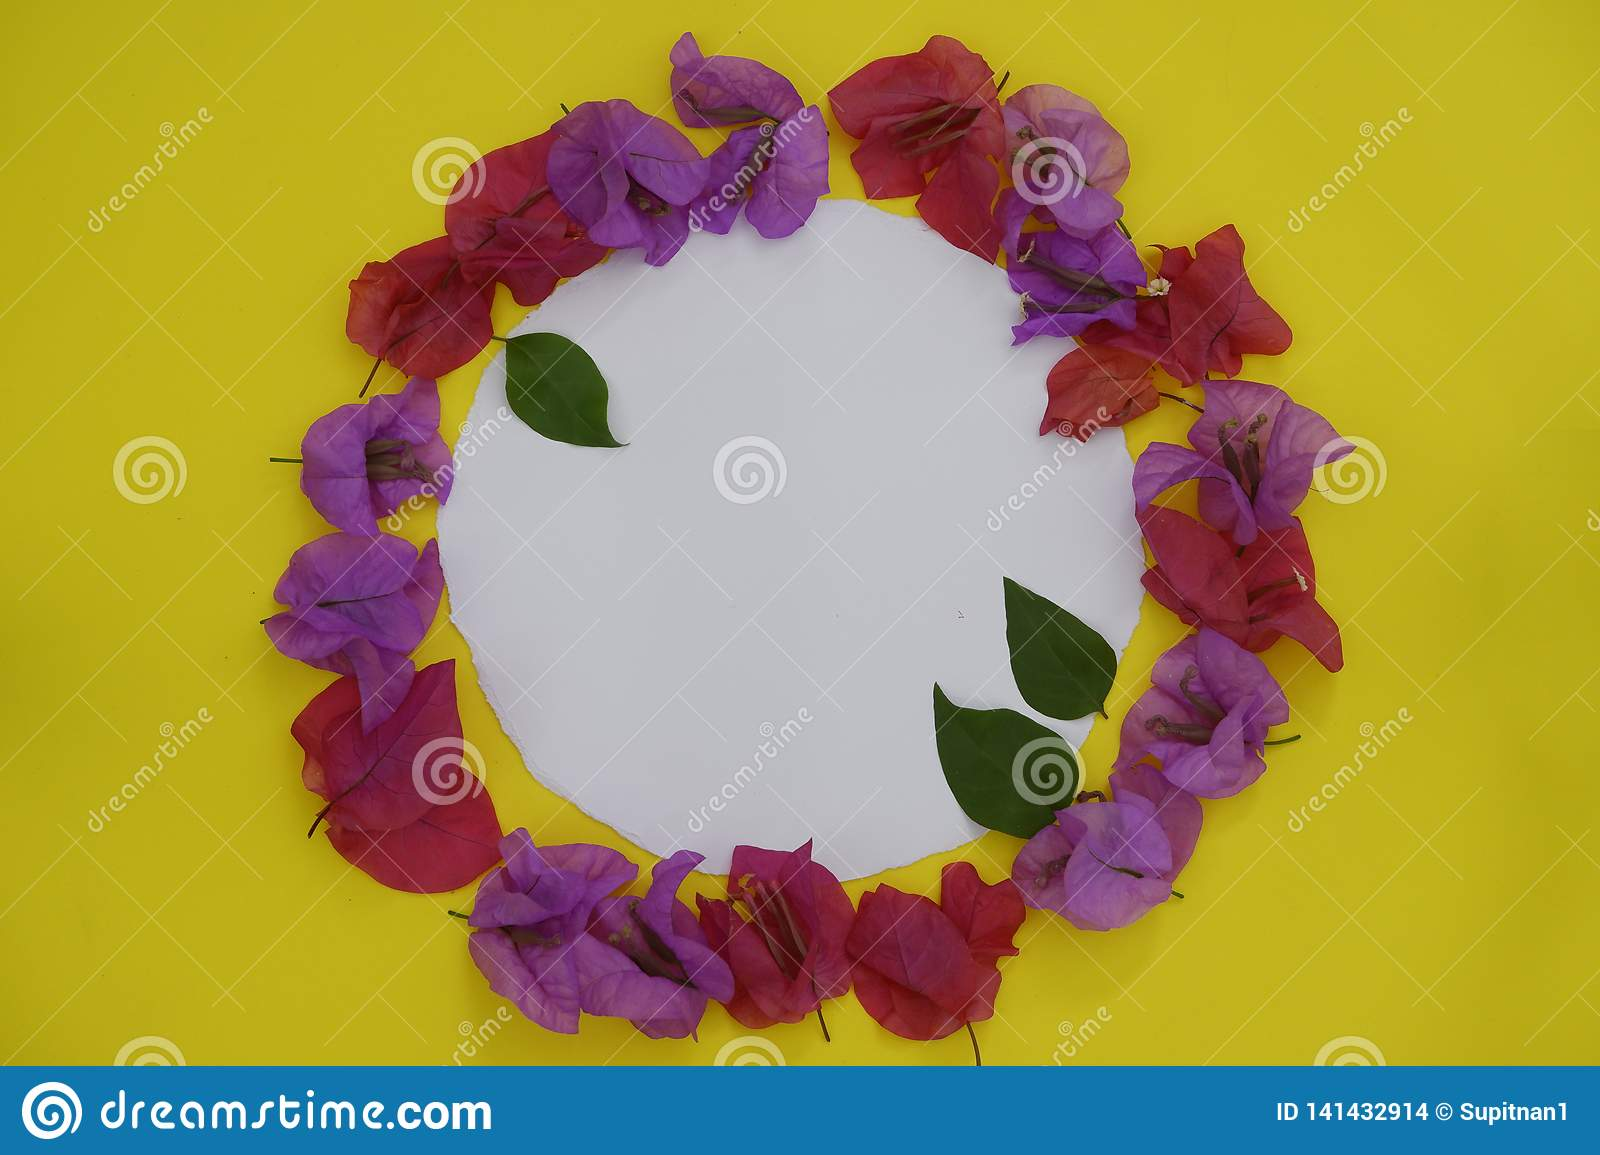 Flower composition. Frame made of fresh colorful flowers with white space for text on yellow background. Flat lay, top view,